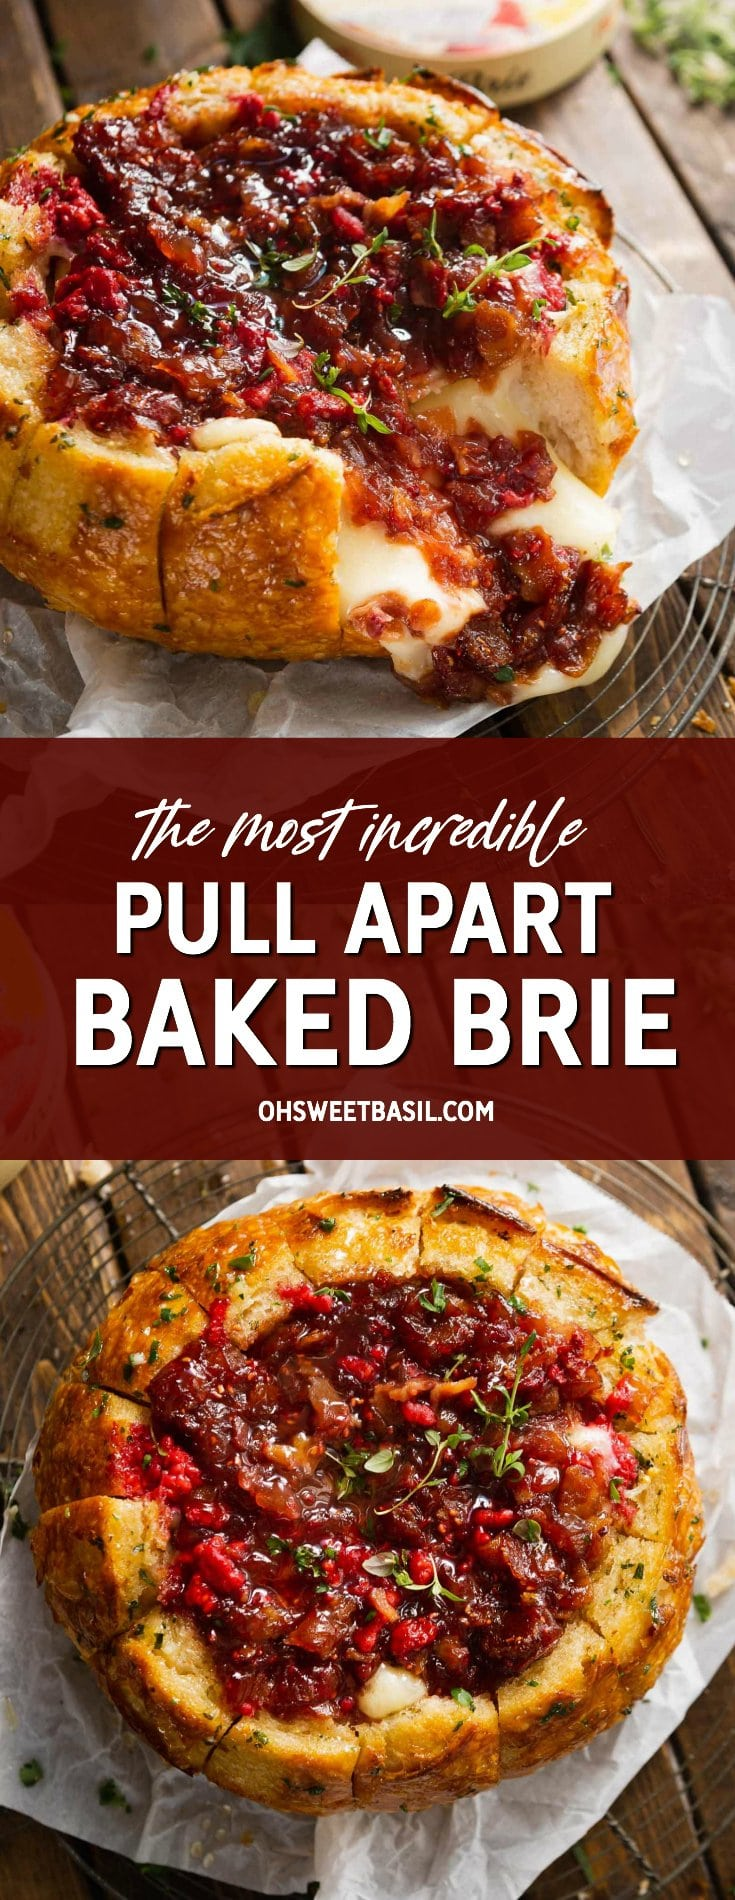 A bread bowl filled with brie and topped with a raspberry onion jam. It has been baked and the cheese is melted. A piece of bread has been pulled apart exposing the melted cheese.